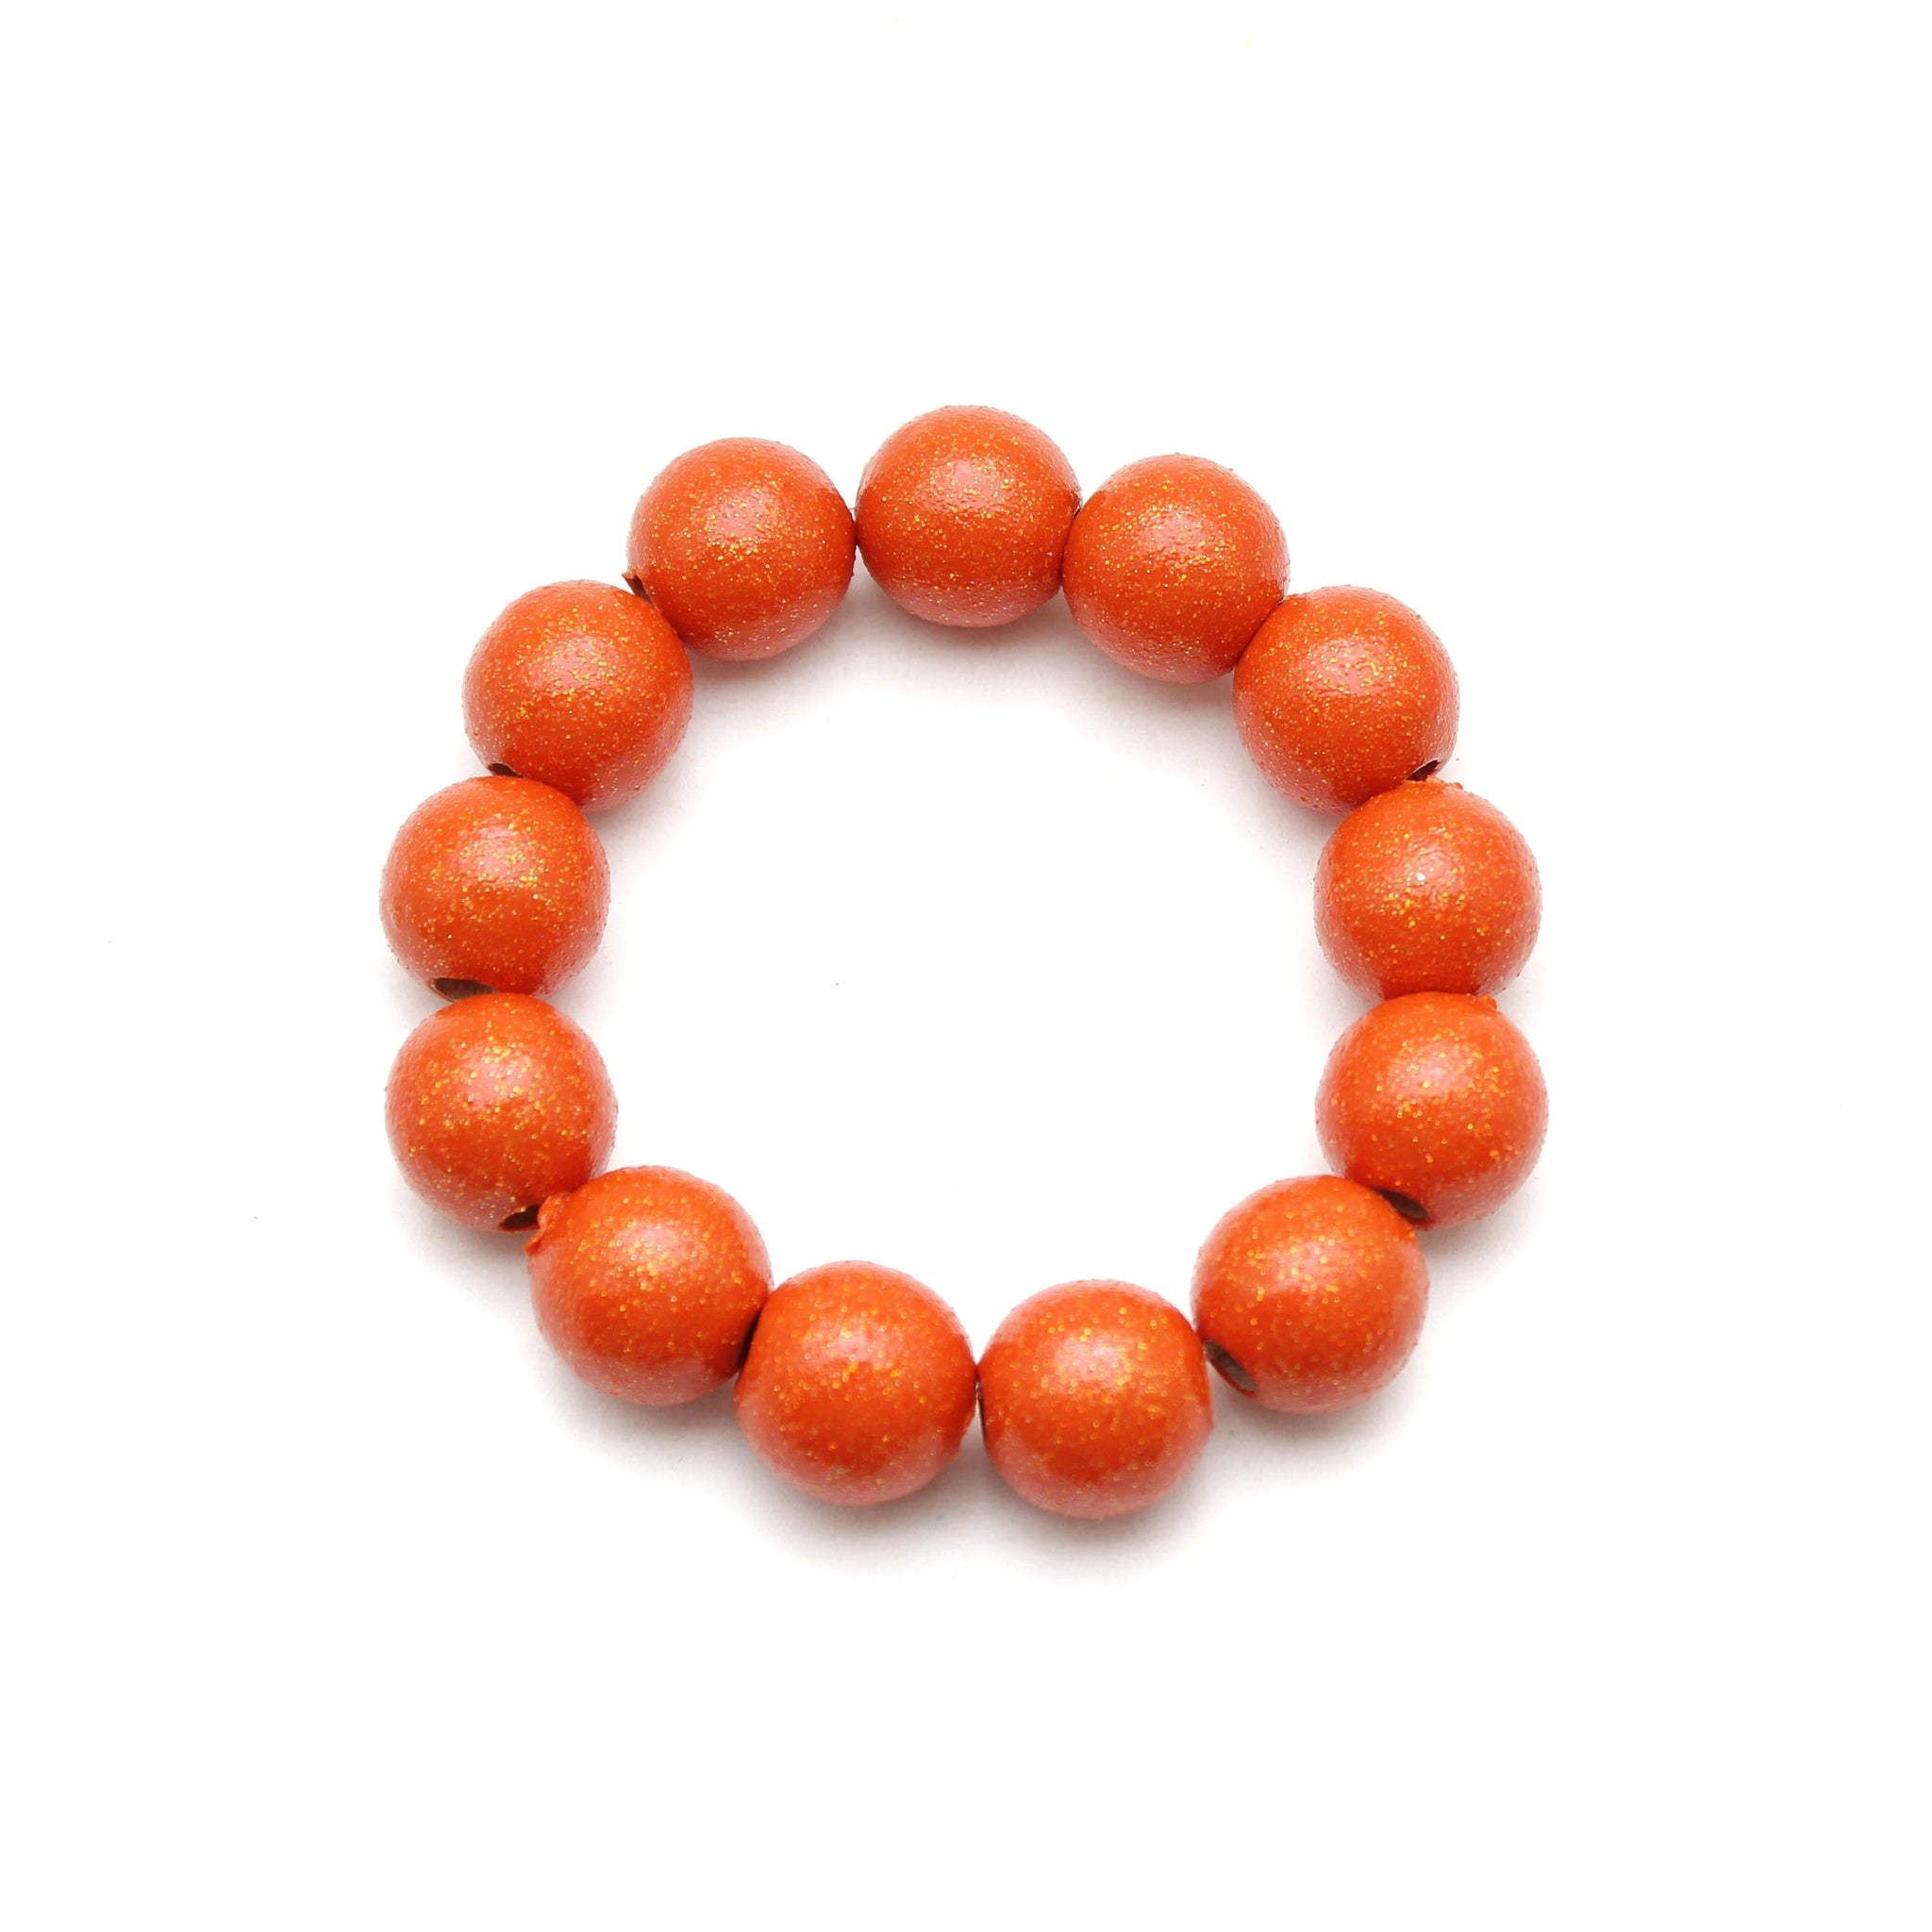 Orange All That Glitters Hand Painted Bracelet